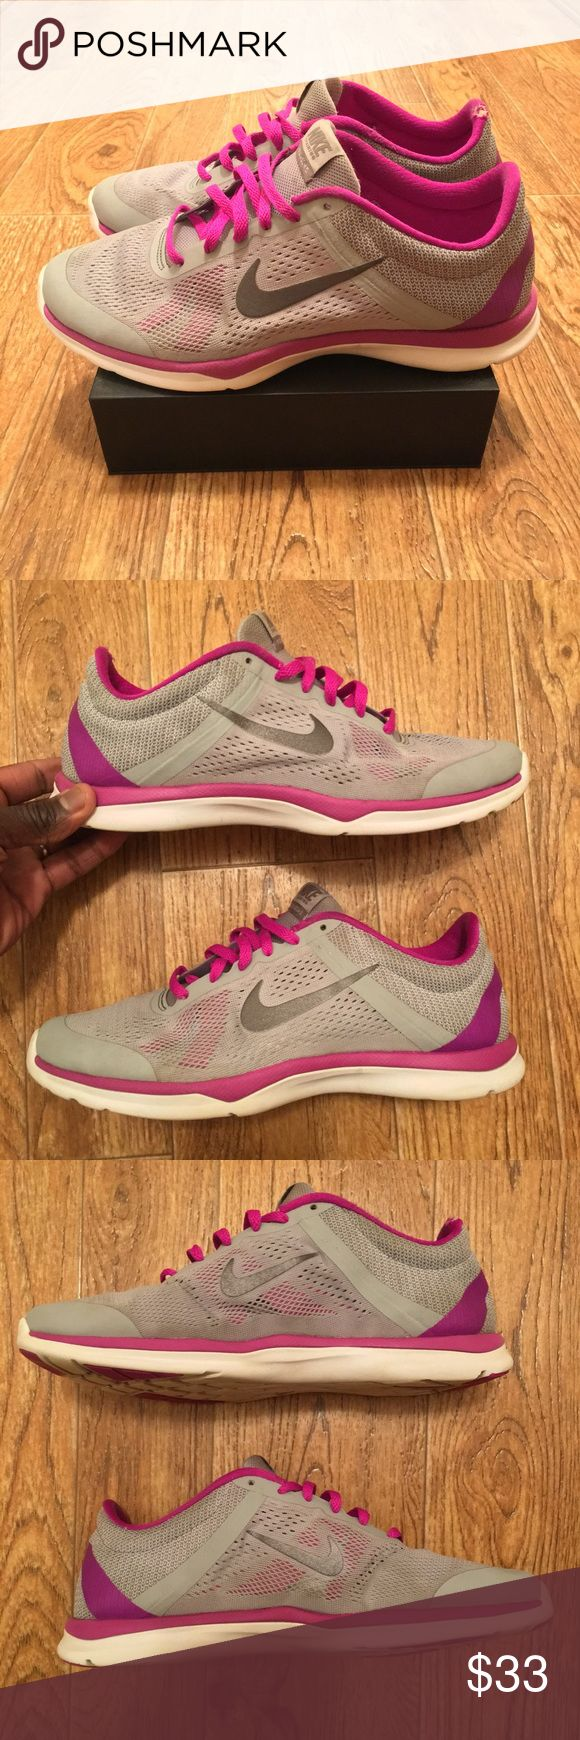 [Nike] In Season 5 Wmn Running Shoes (used) Size 9 Used Nike In Season 5 women's running shoes, good condition overall, small damage on heel of right shoe (see photos). Women's size 9. **Offers Accepted**       |161| Nike Shoes Sneakers